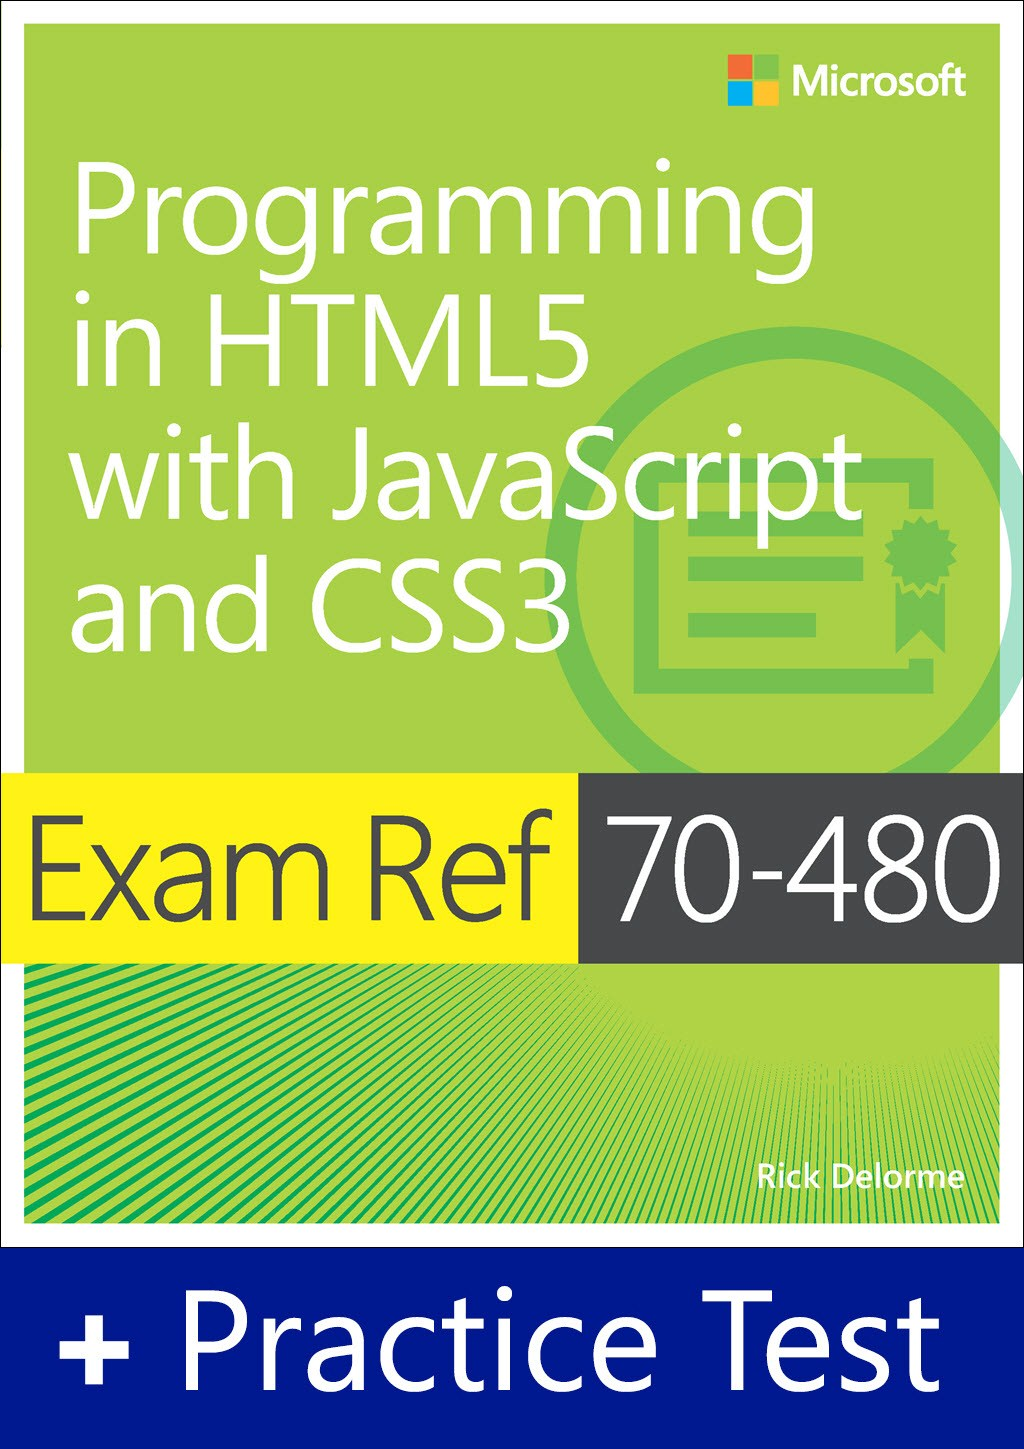 Exam Ref 70-480 Programming in HTML5 with JavaScript and CSS3 with Practice Test